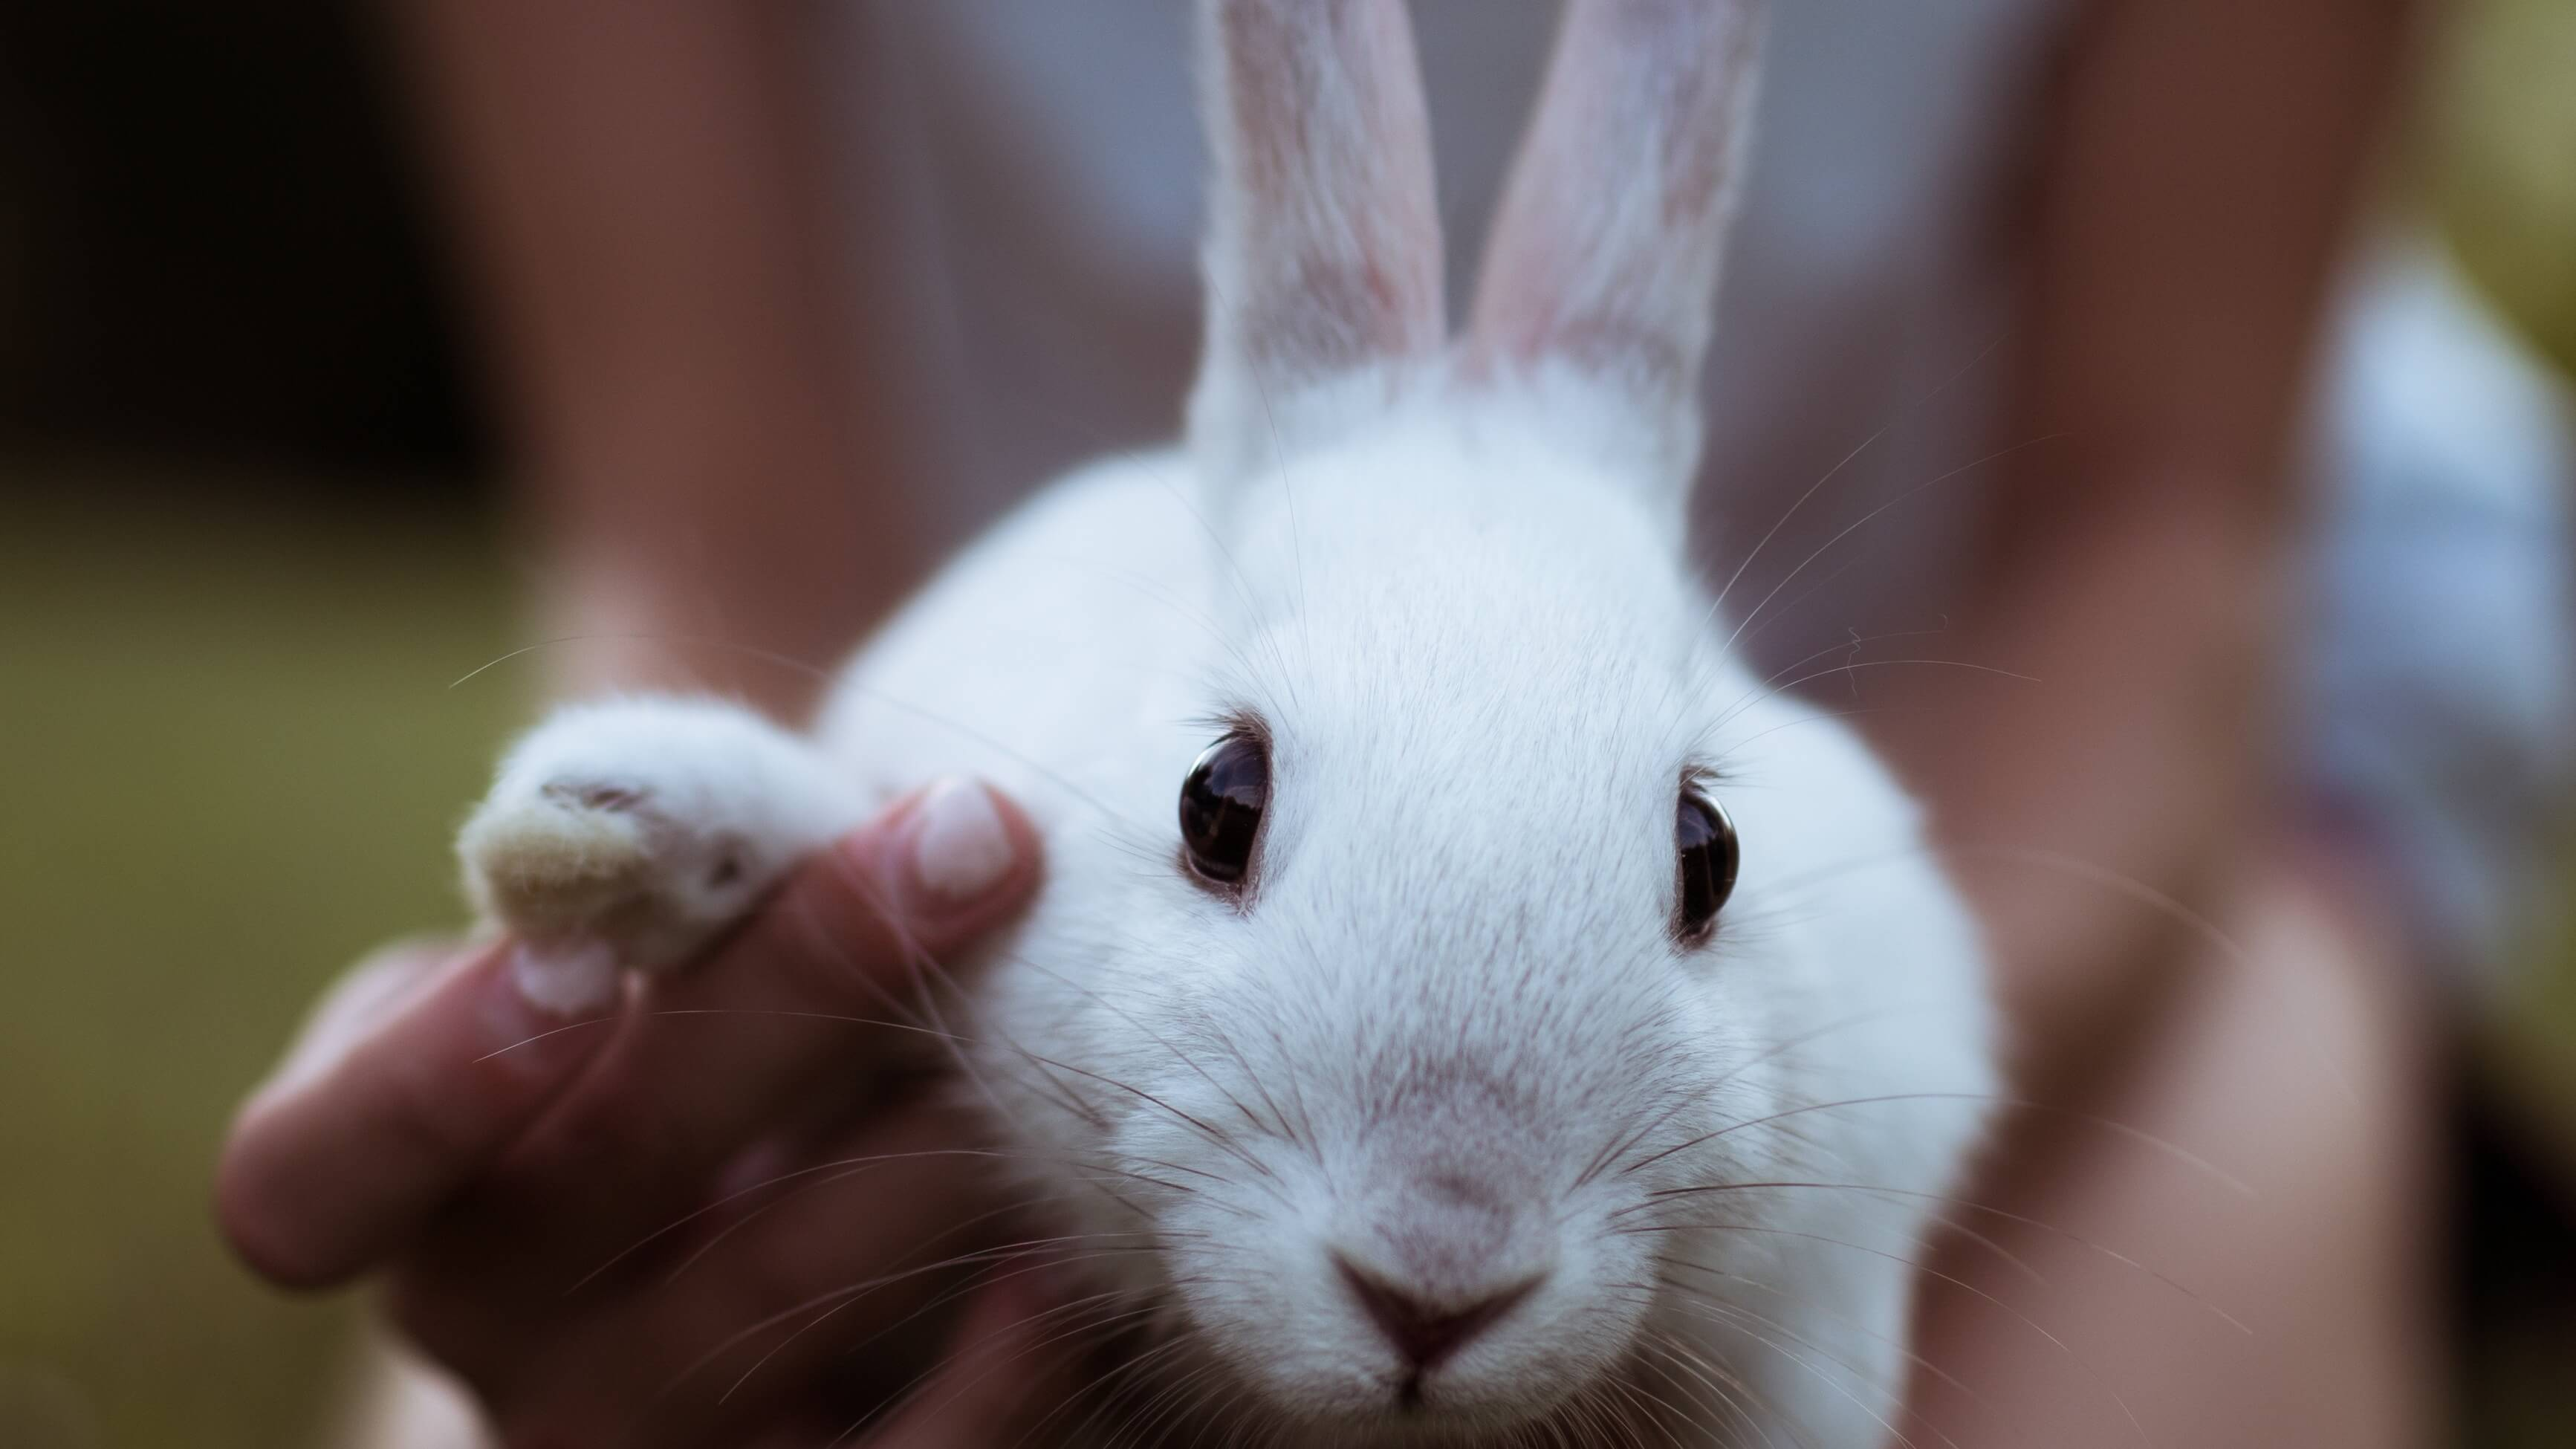 8.3 Million People Sign Anti-Animal Testing Petition Delivered to the UN